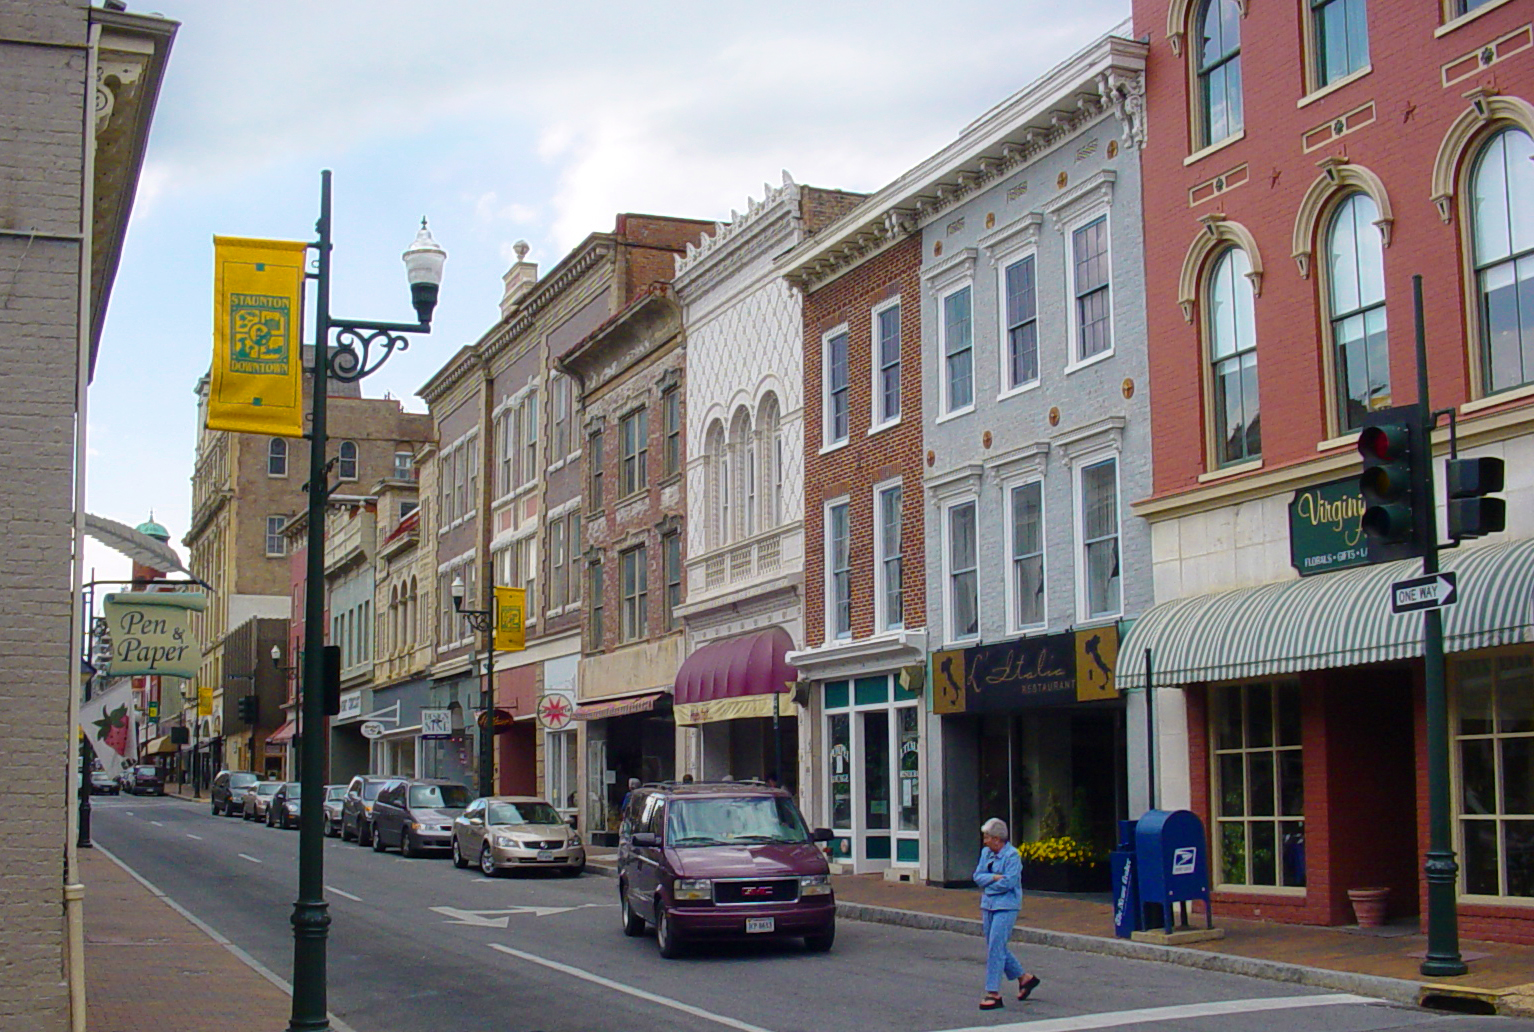 Downtown_Staunton_VA_edit